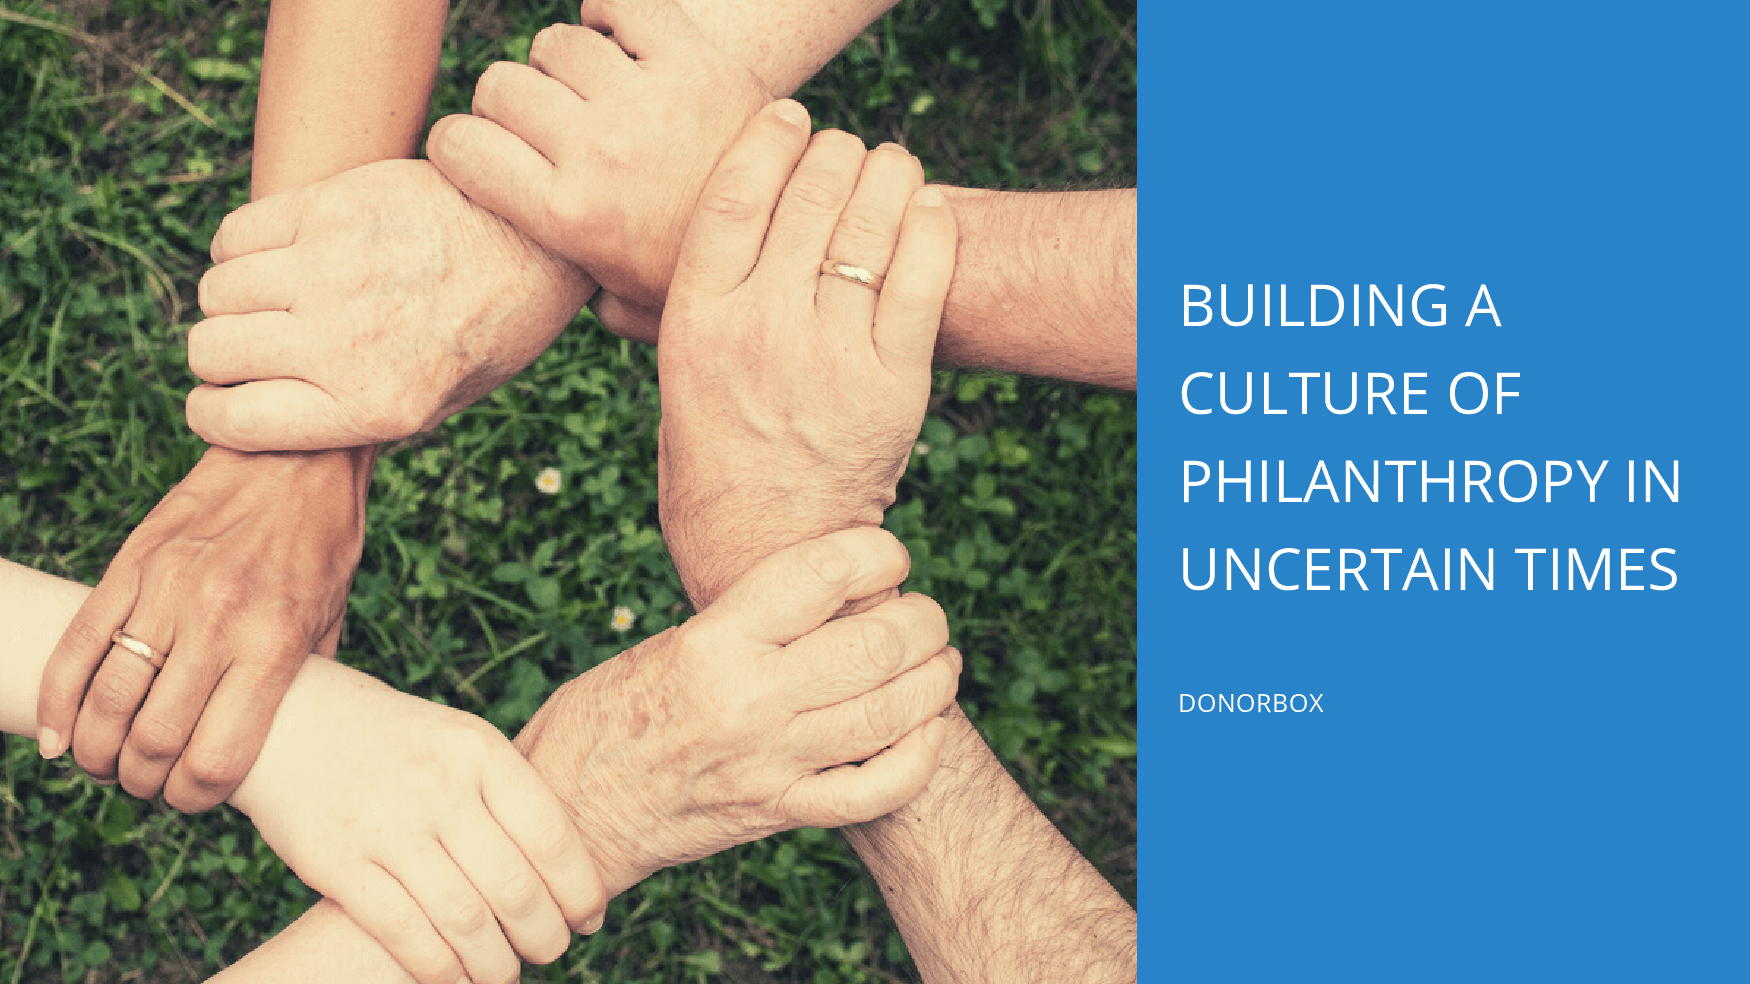 Building A Culture of Philanthropy In Uncertain Times